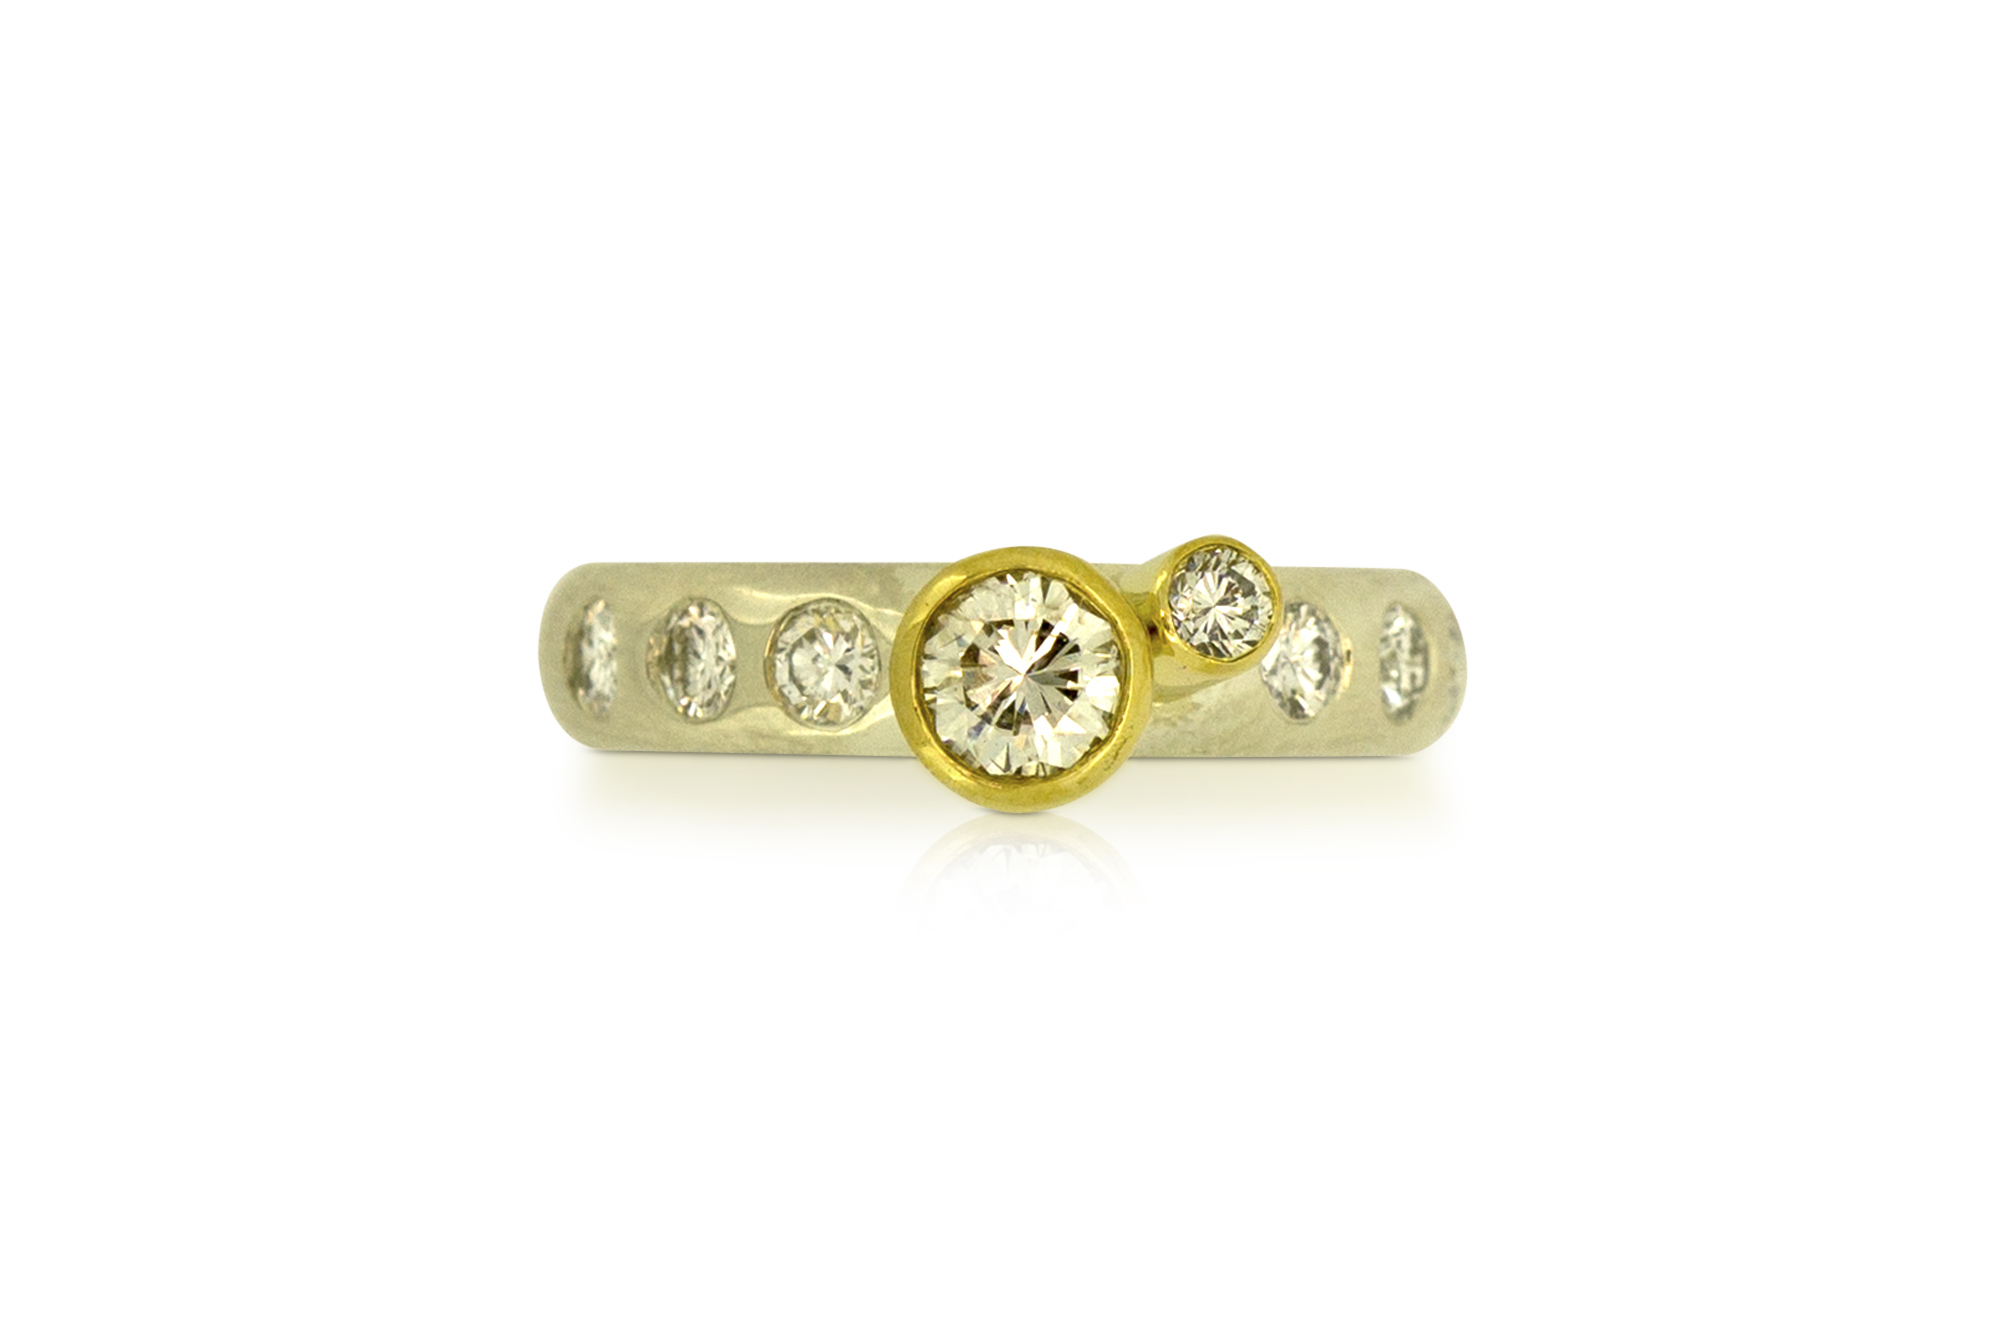 New ring with 8 diamonds set in it.  18 carat yellow gold settings and 9 carat white gold band.